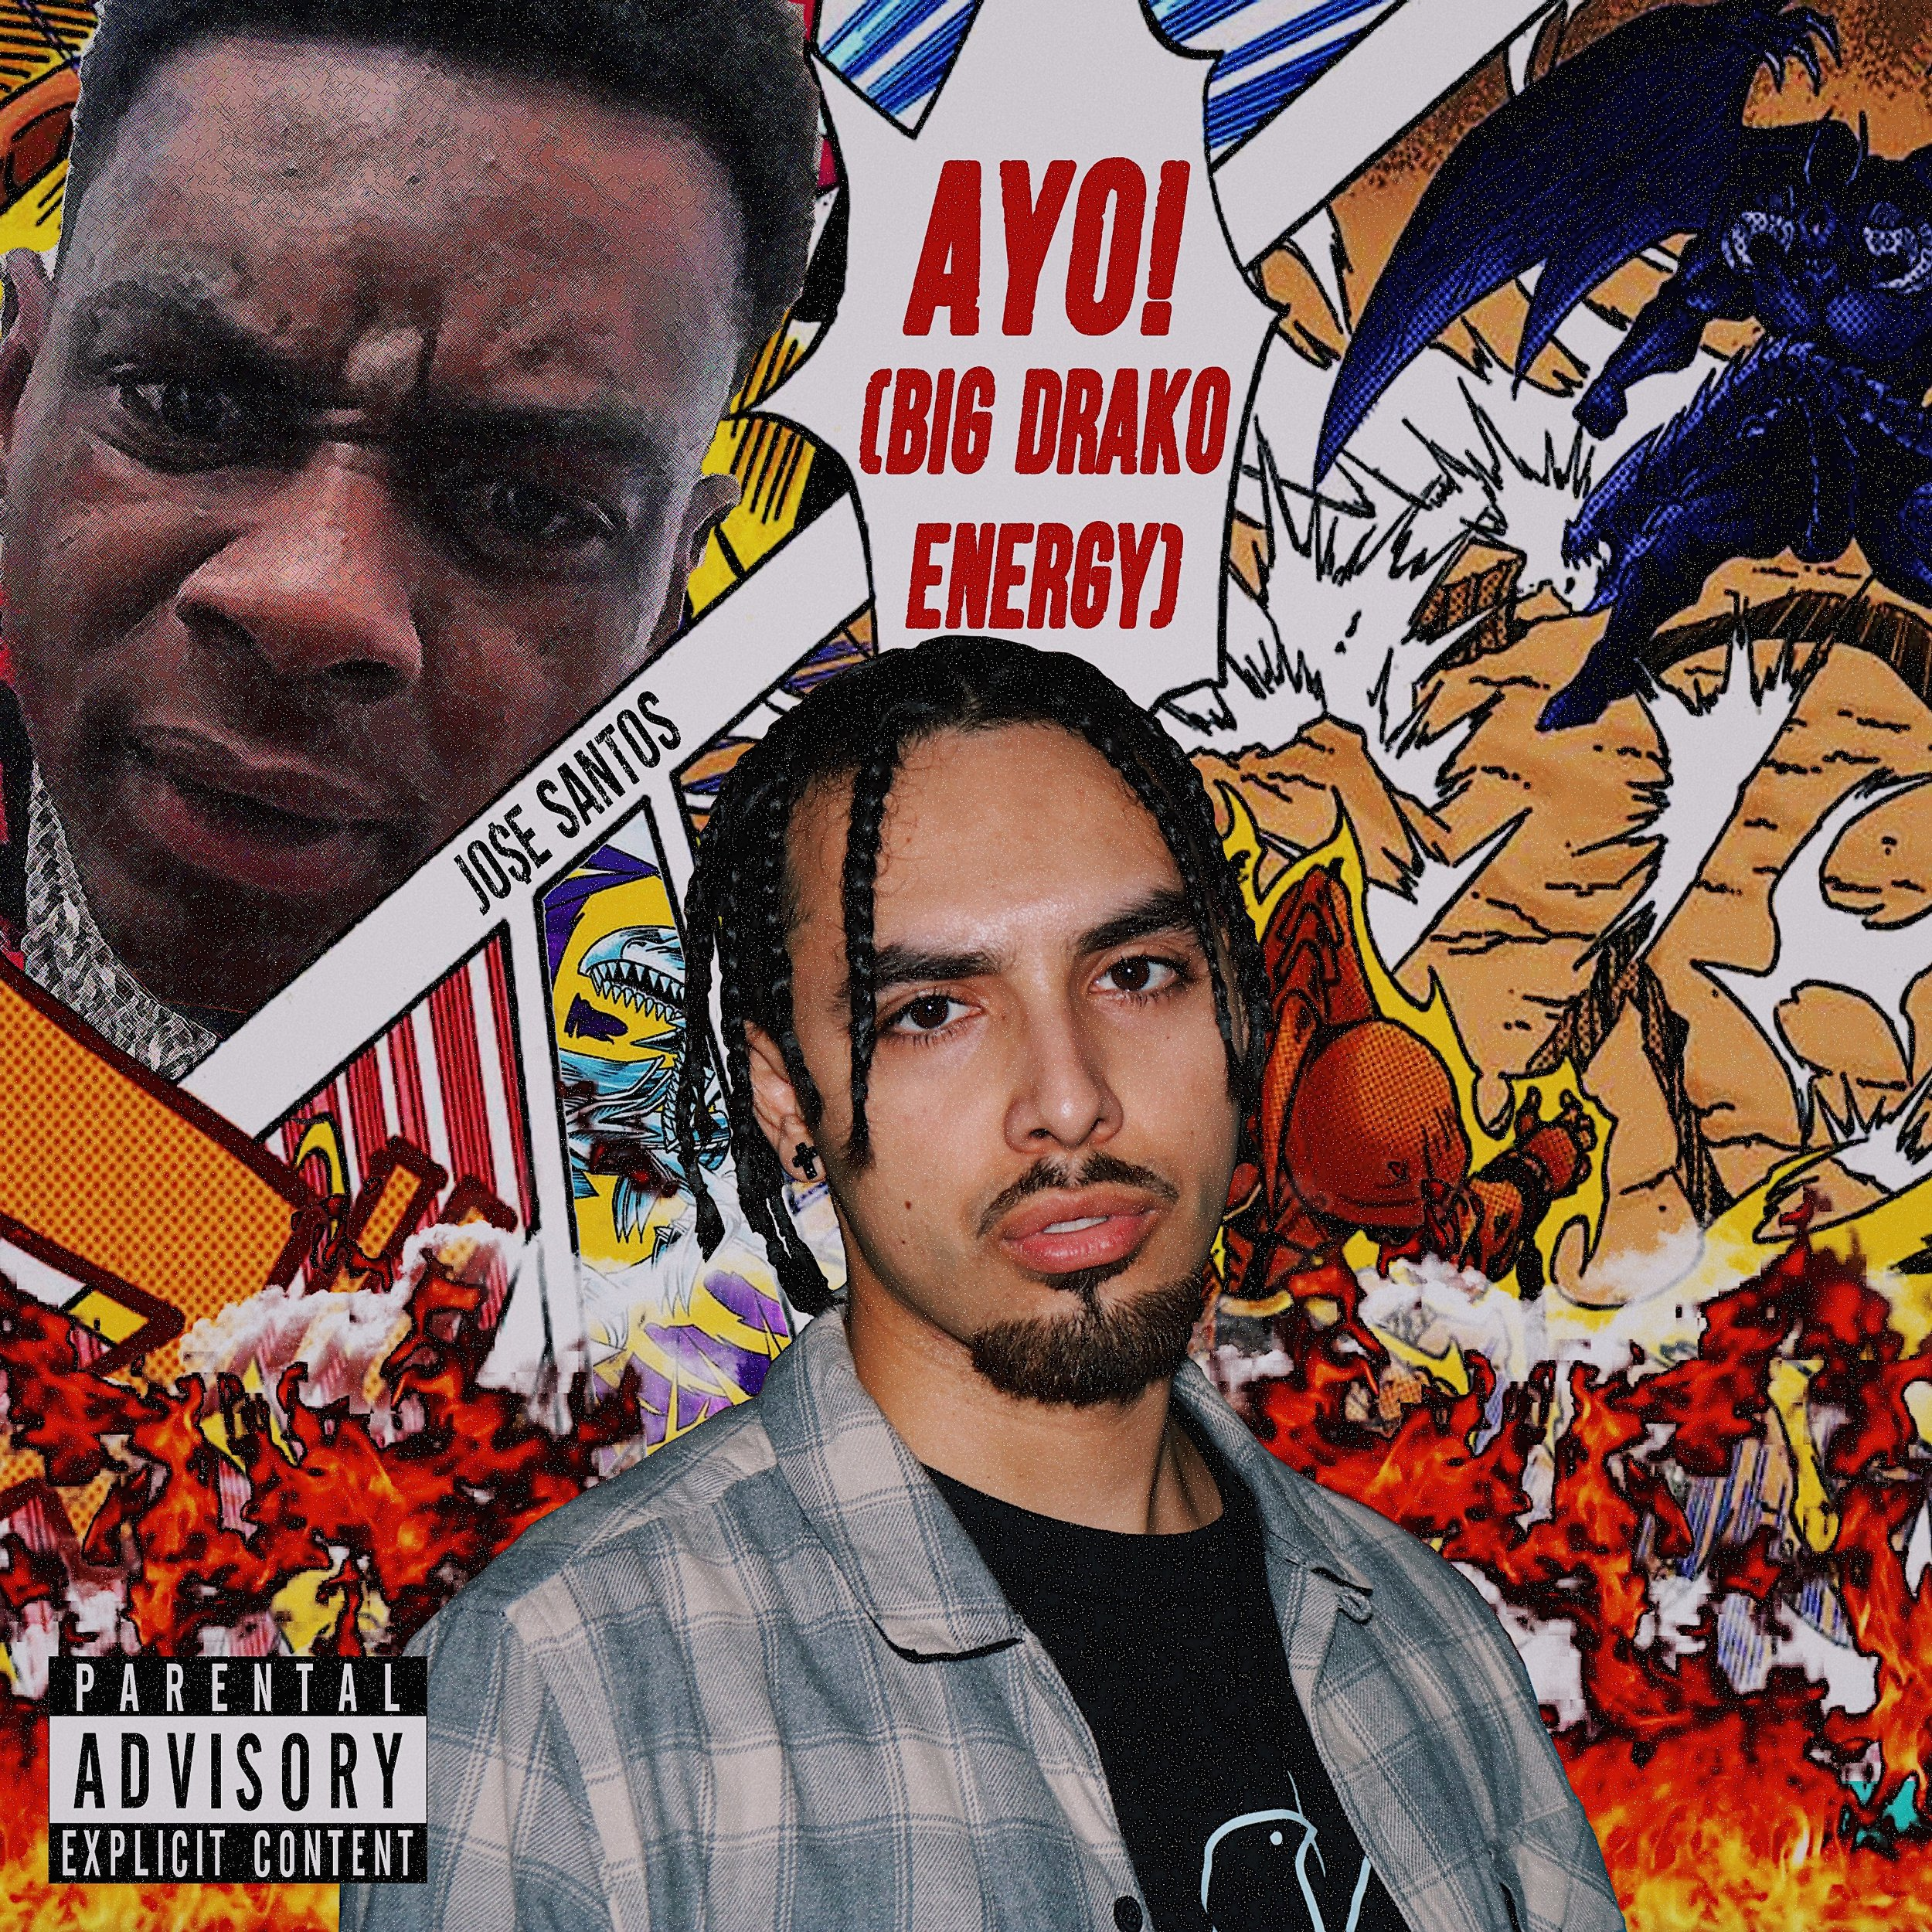 AYO! (BIG DRAKO ENERGY) Cover Art FINAL.JPG